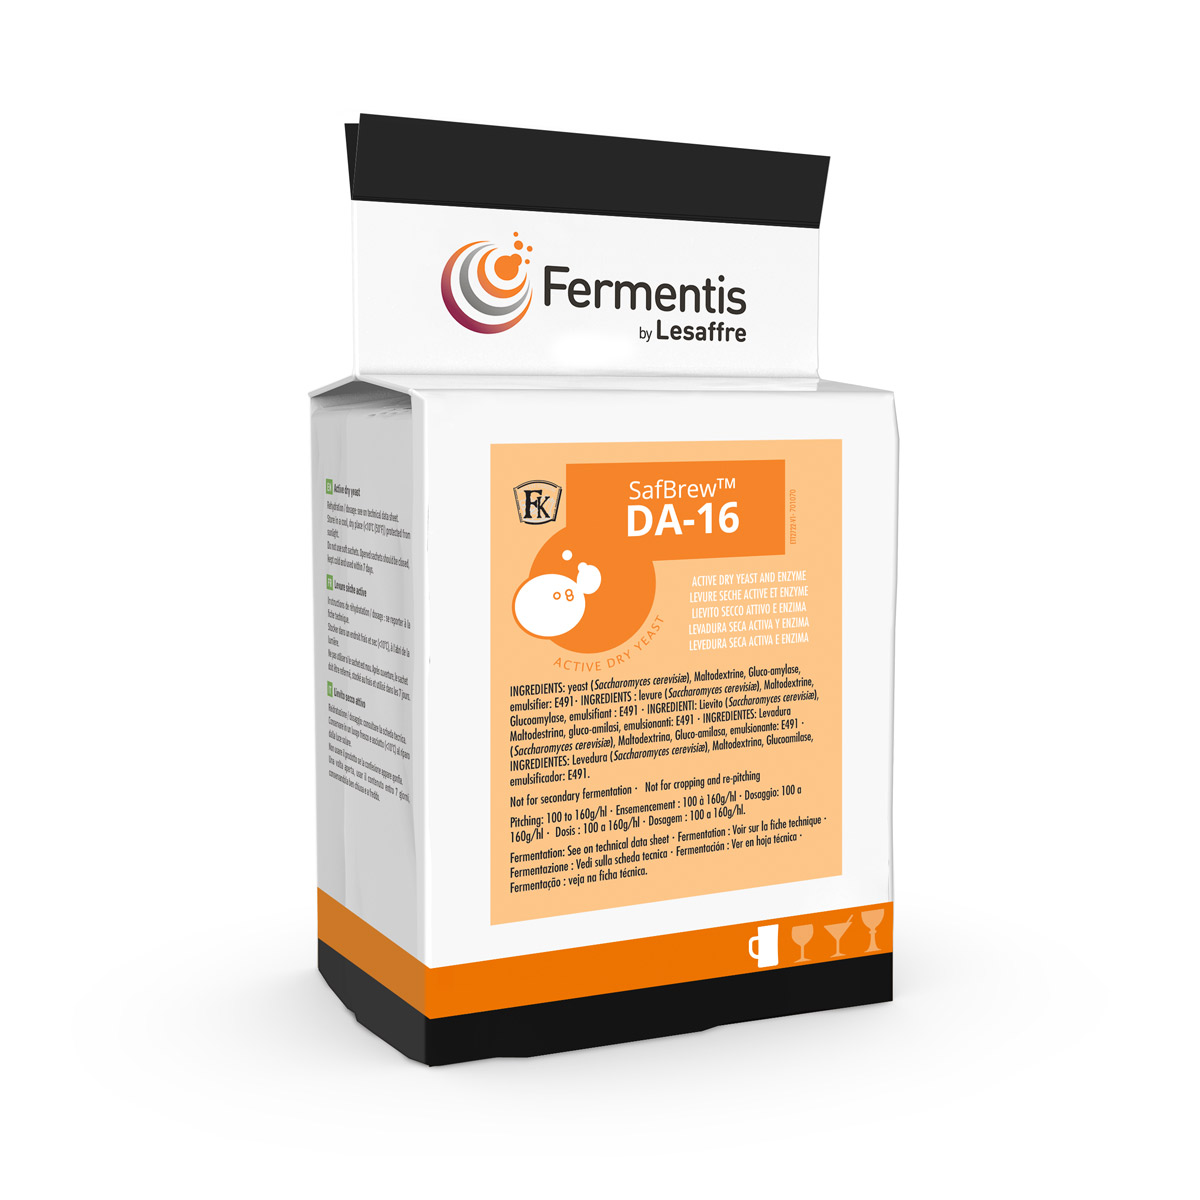 SafBrew DA 16 active dry yeast for brewers by Fermentis